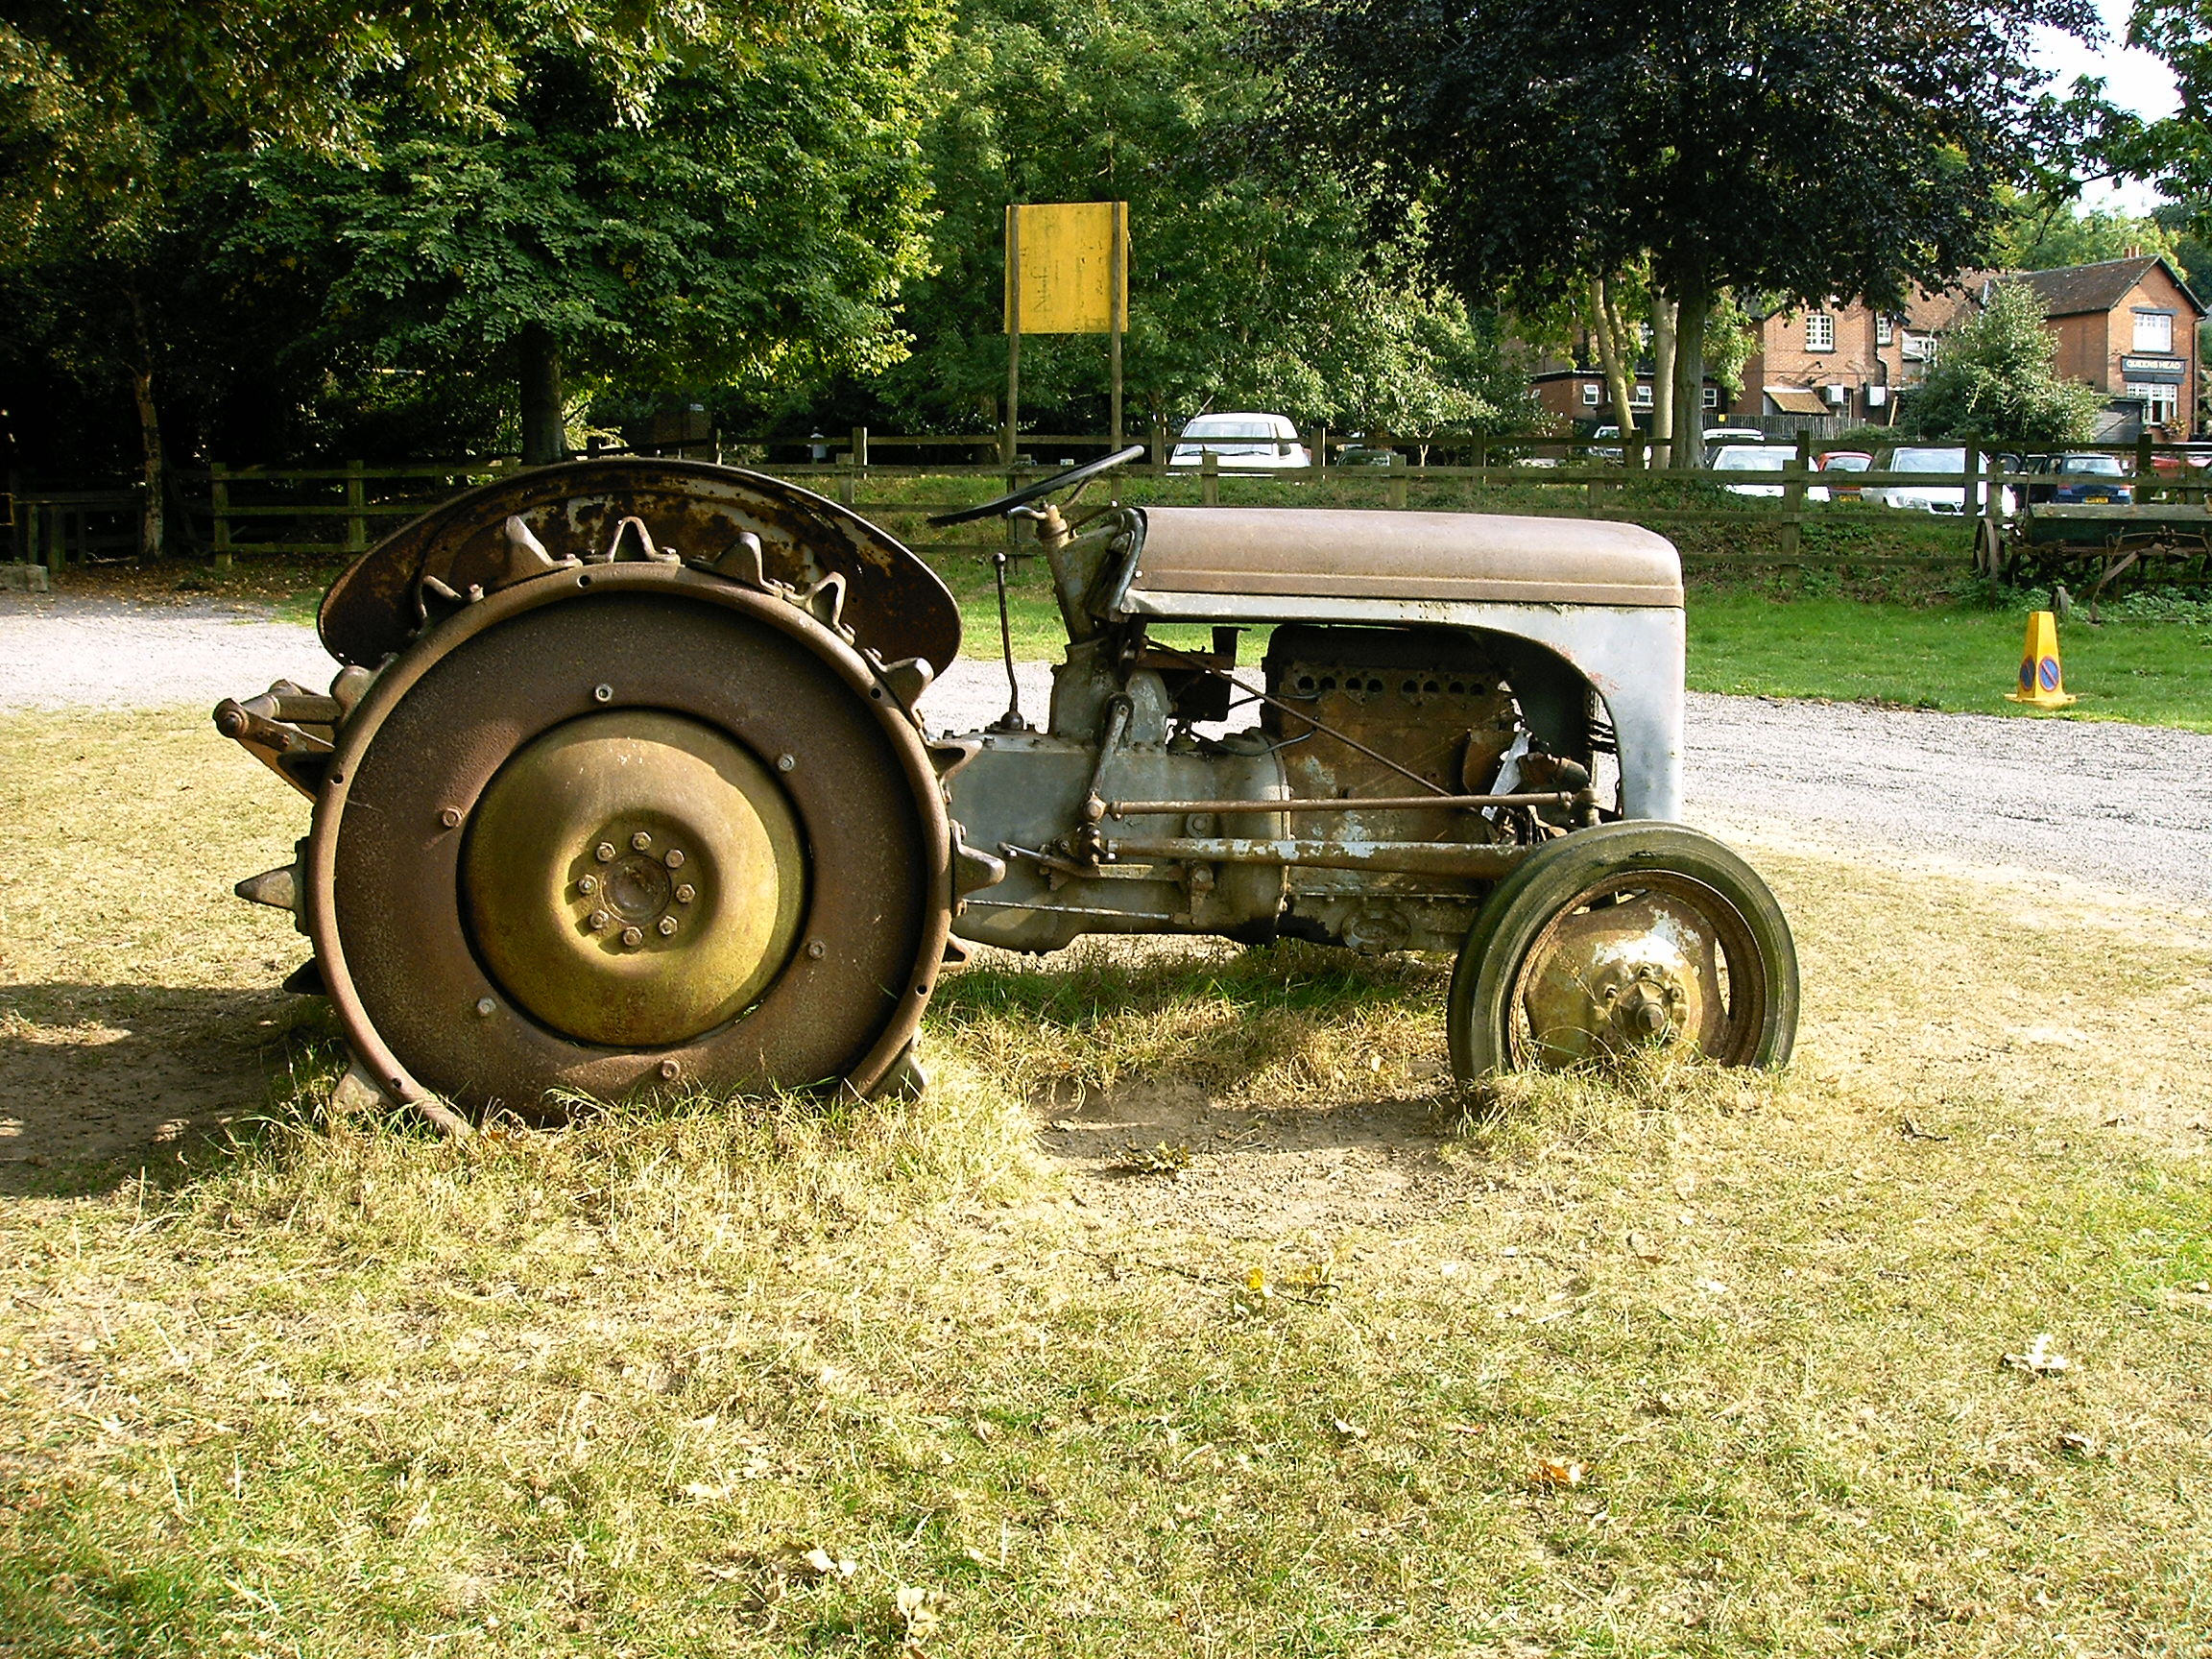 File:Old tractor.jpg - Wikimedia Commons